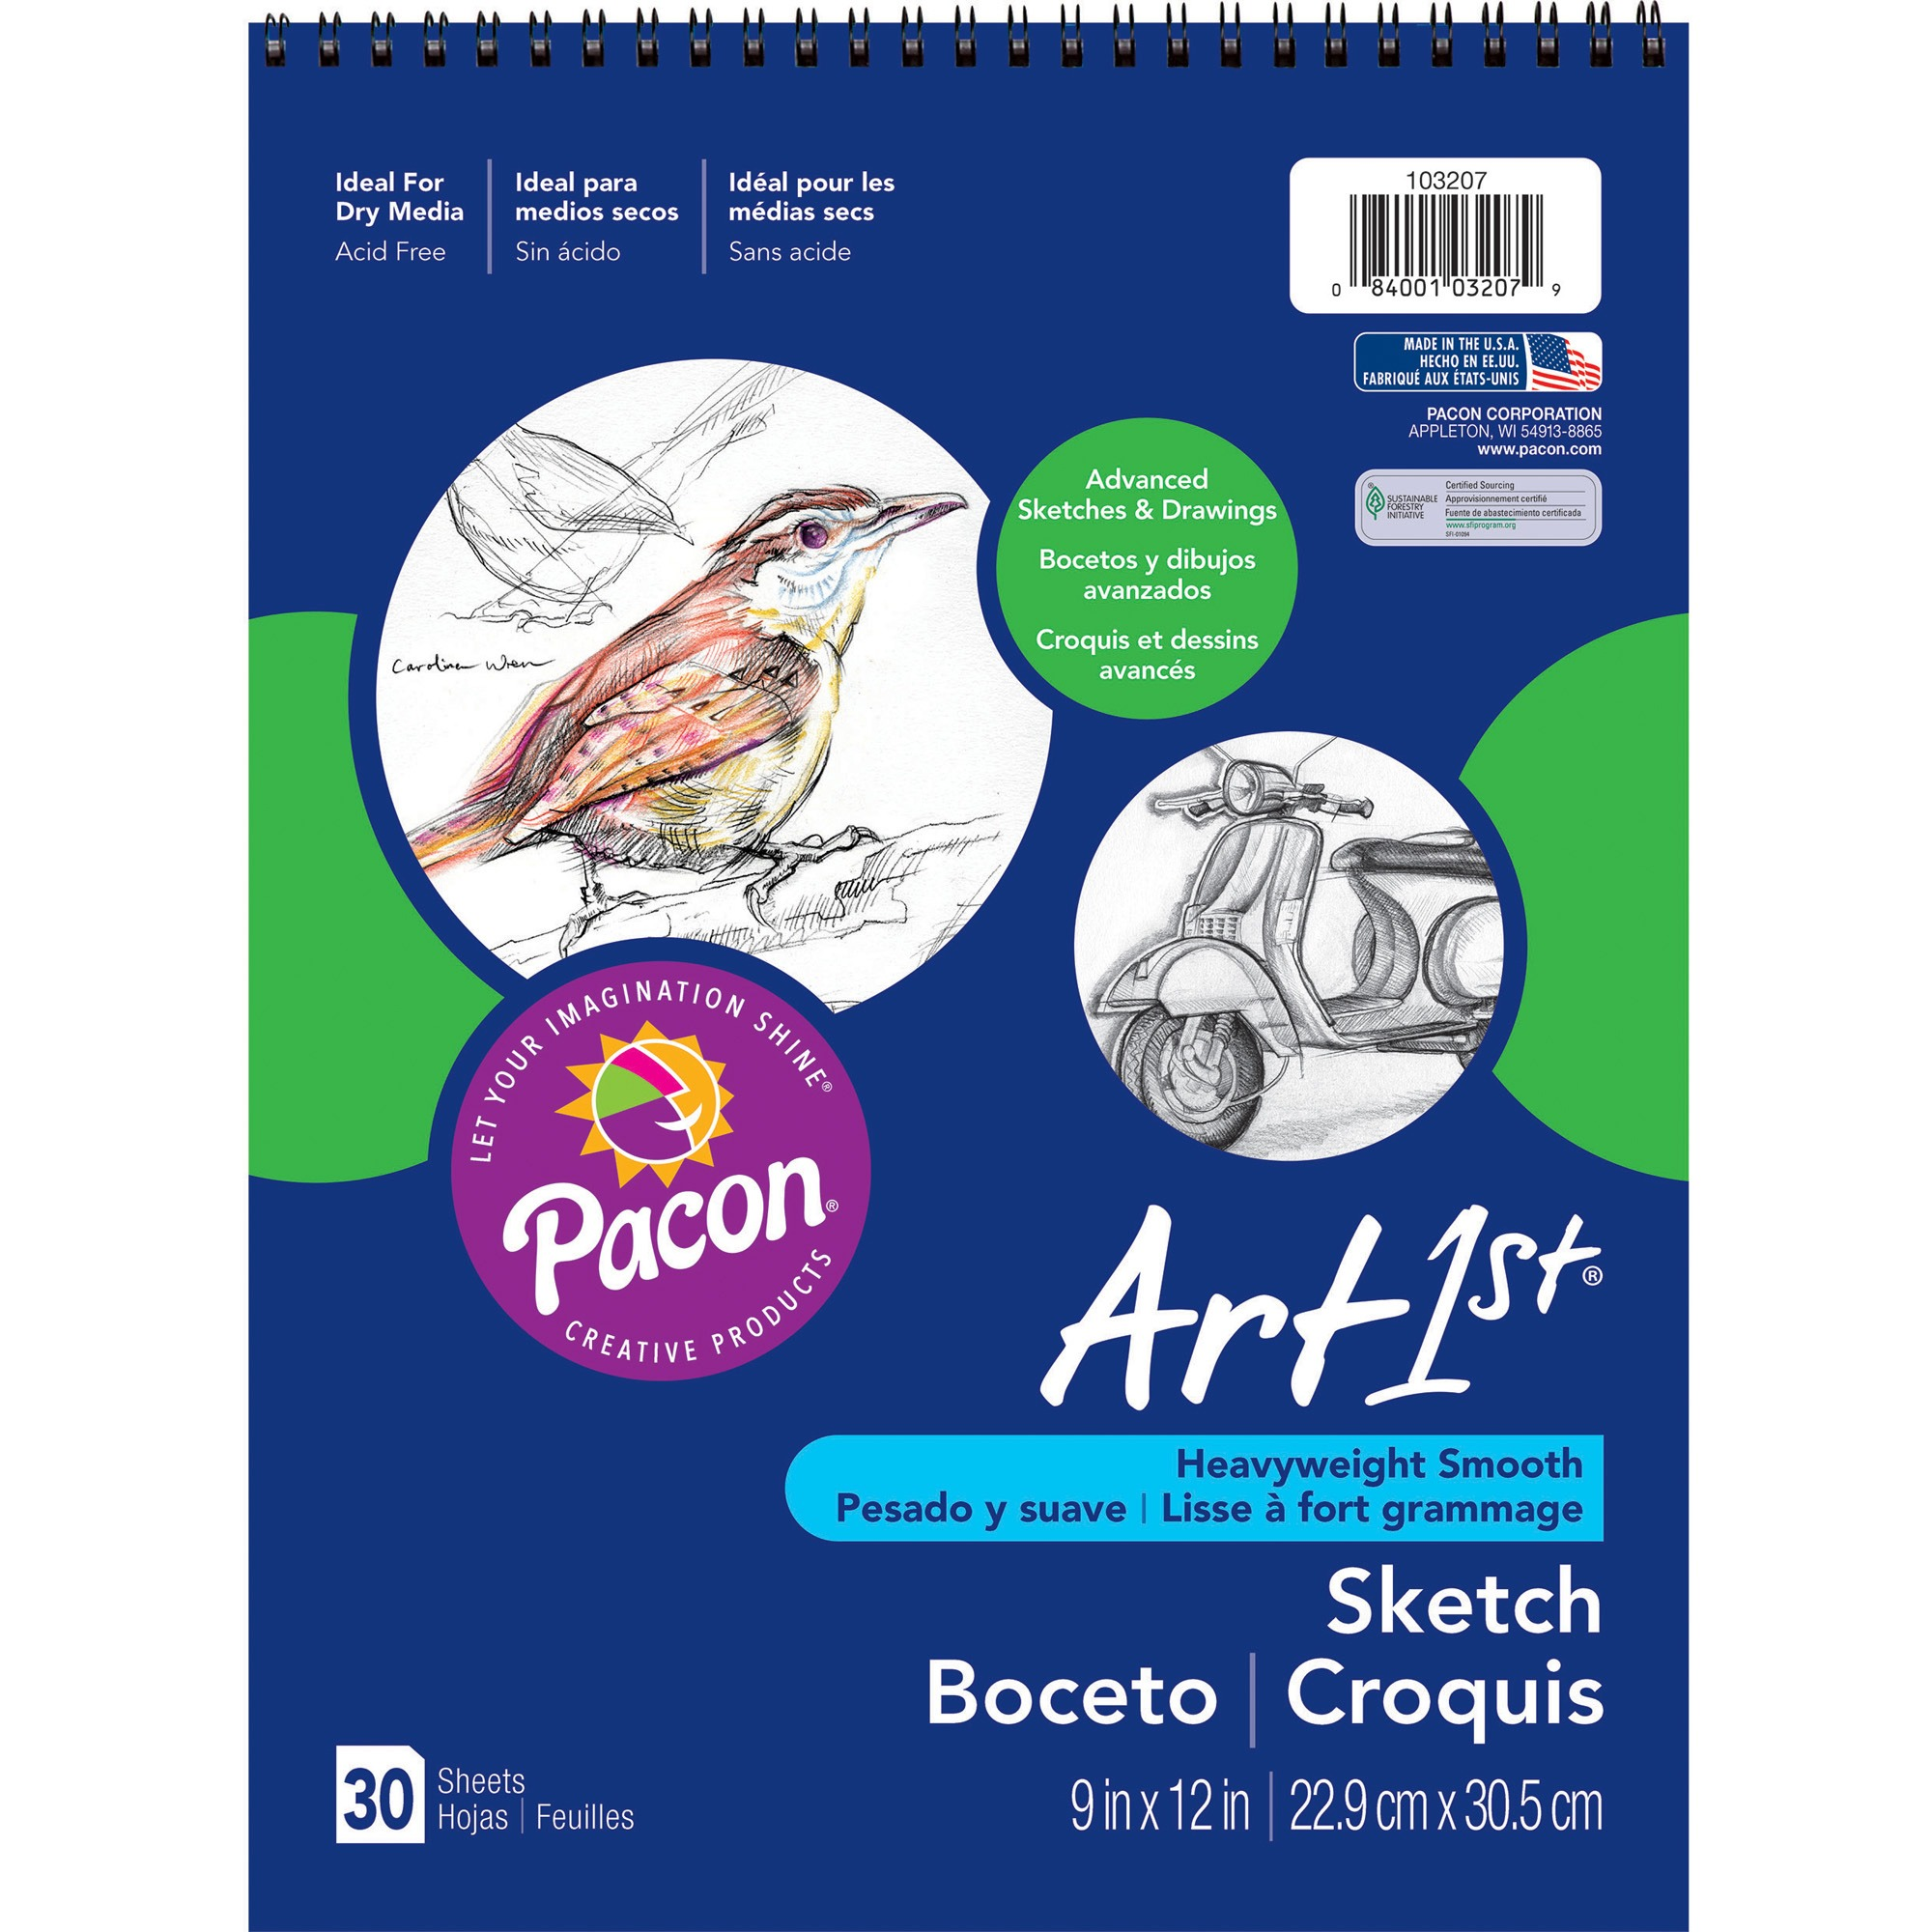 Pacon Art1st Sketch Book by PACON CORPORATION